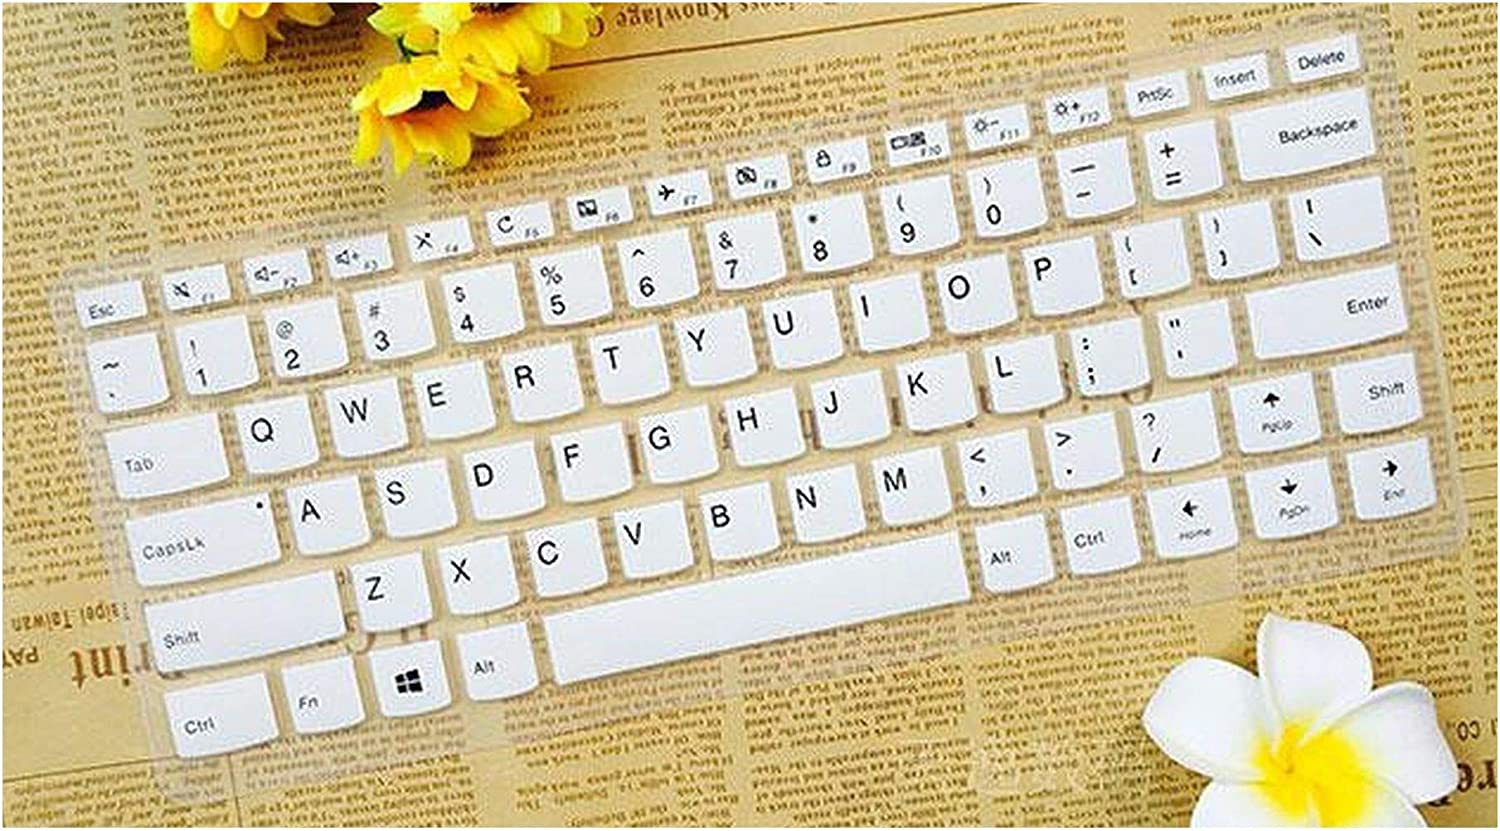 Colorful Silicone Keyboard Cover Skin Protector for Lenovo Flex 4 1480 Yoga 5 Pro Yoga 910 13 910 13ikb Miix720 Miix 720 12,White